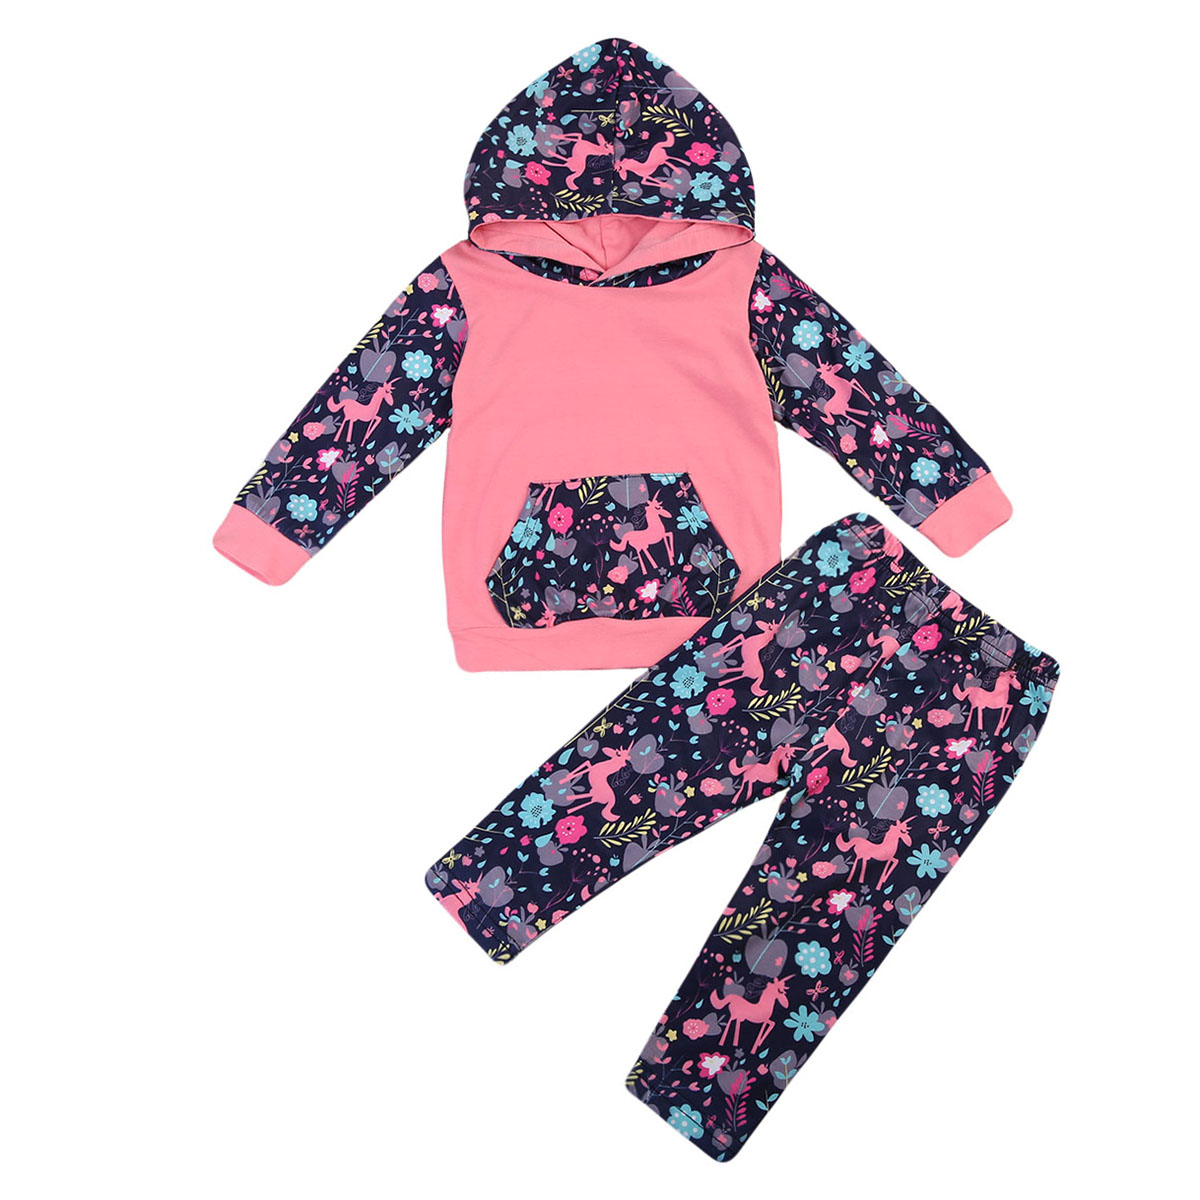 Baby Girl Long Sleeve T-shirt Tops Hooded Flower Pants Casual Outfits Toddler Clothing Floral Baby Girls Clothes Sets 3pcs toddler baby girls children clothing sets kids girl o neck lace tops long sleeve t shirt floral pants clothes outfit set